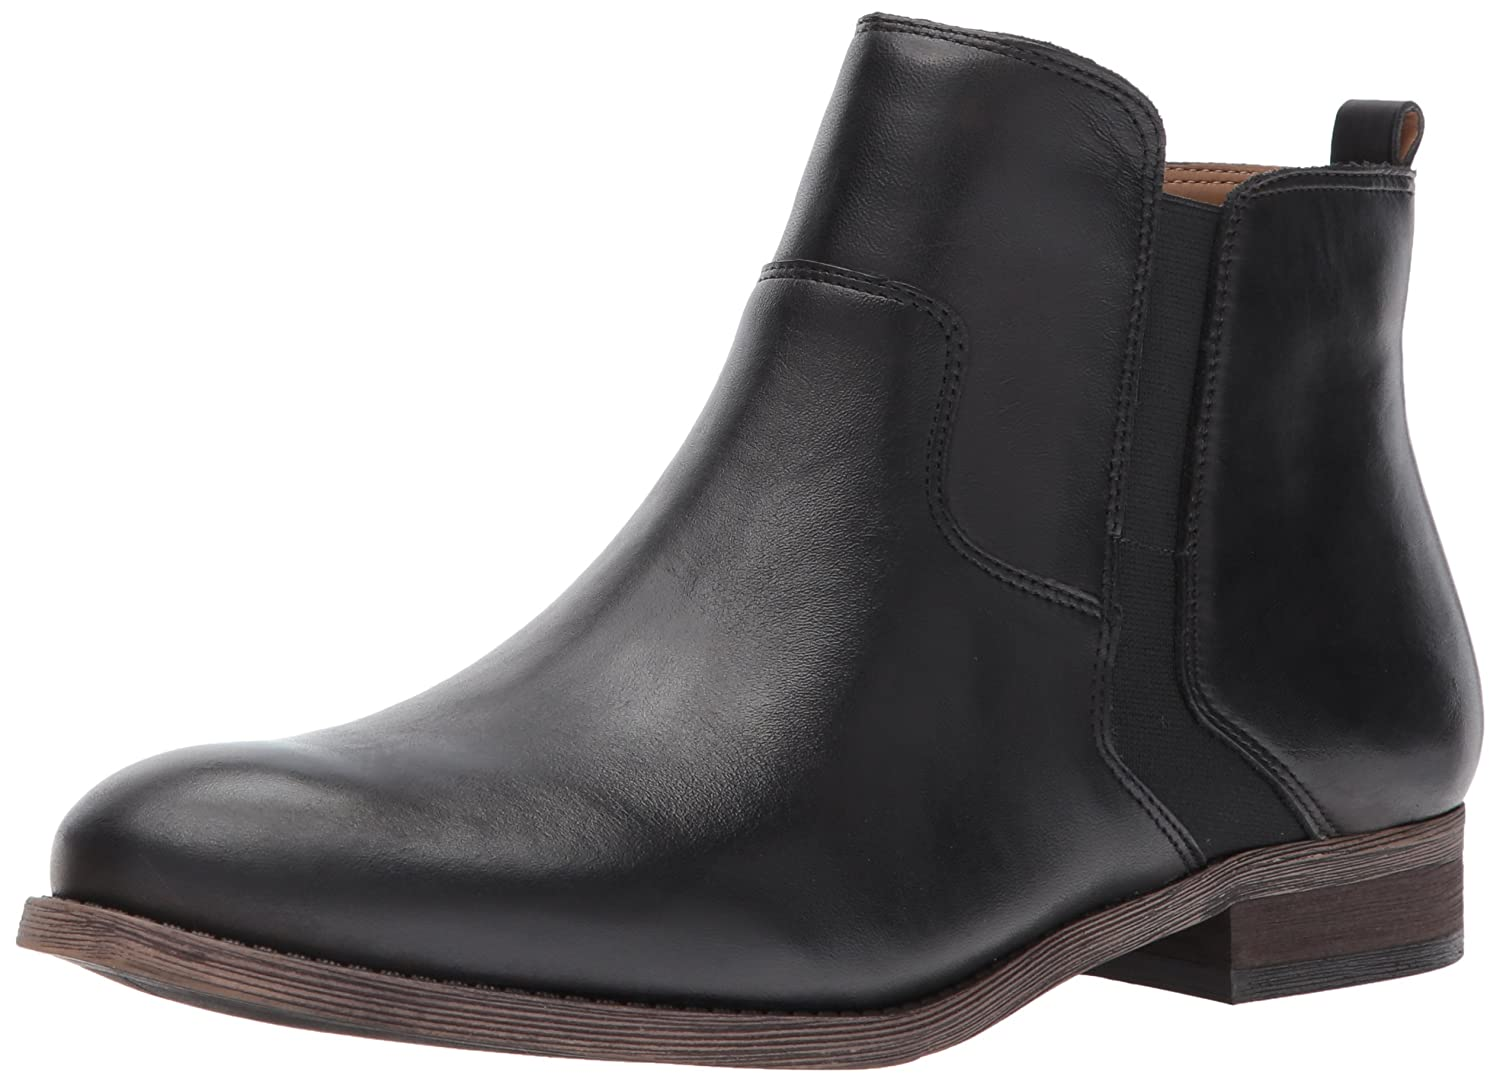 Franco Sarto Women's Hampton Ankle Boot B073H4CHPT 8.5 W US|Black